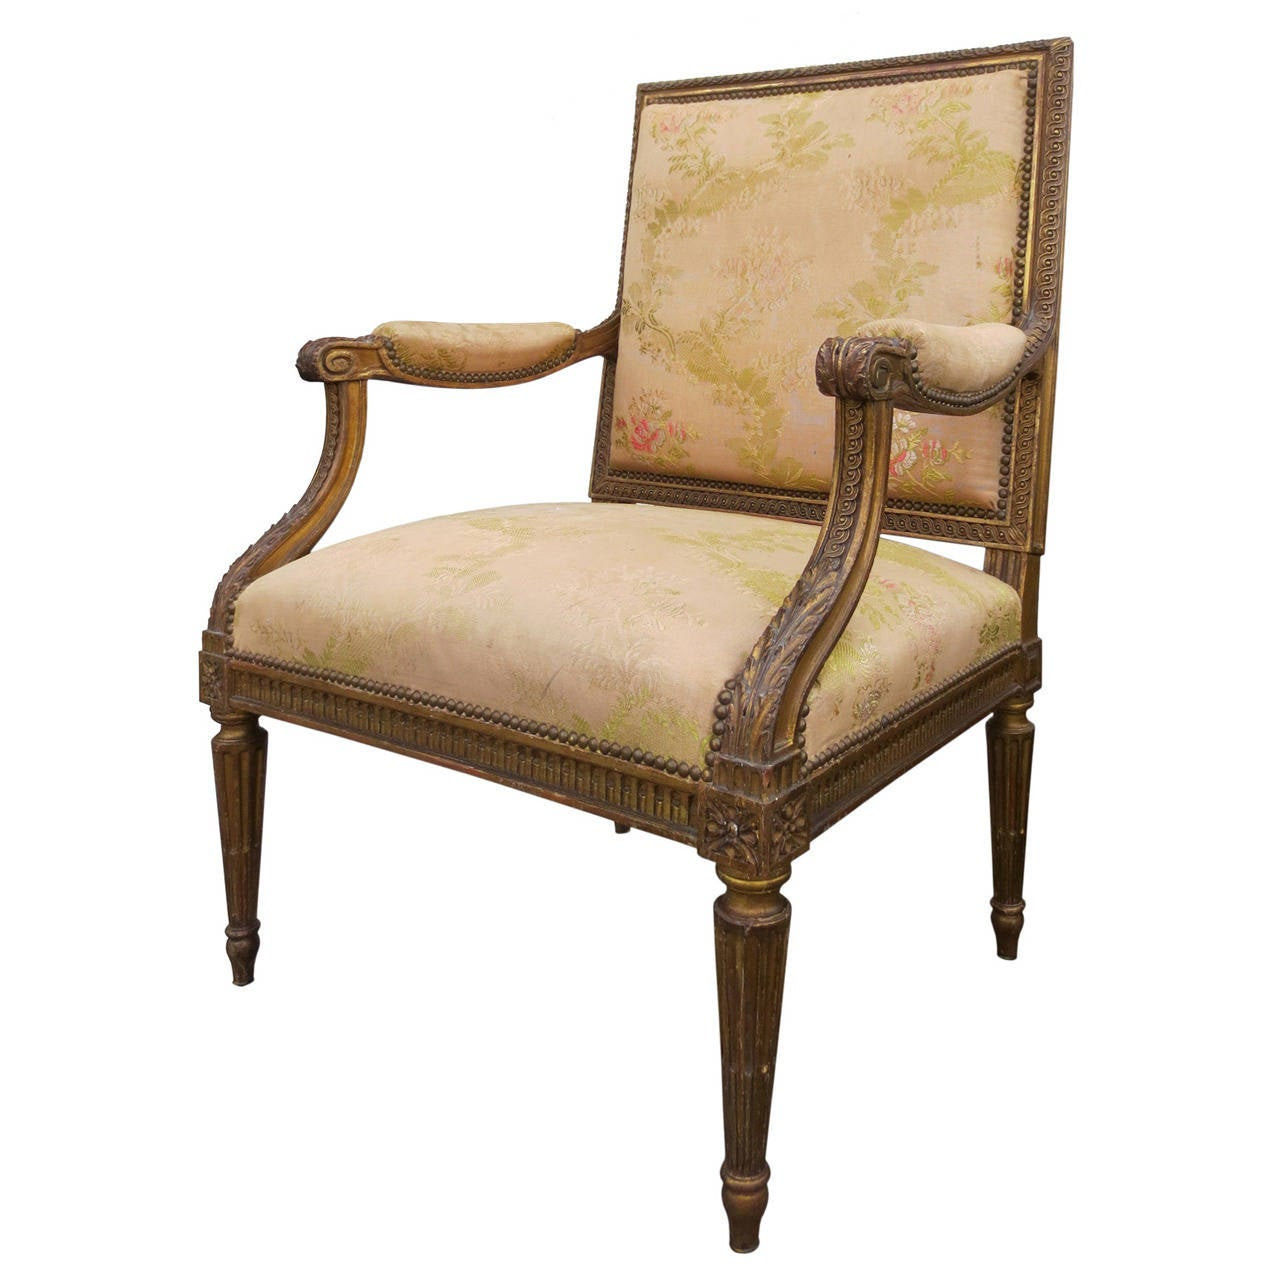 19th century french napoleon iii carved and giltwood fauteuil at 1stdibs. Black Bedroom Furniture Sets. Home Design Ideas